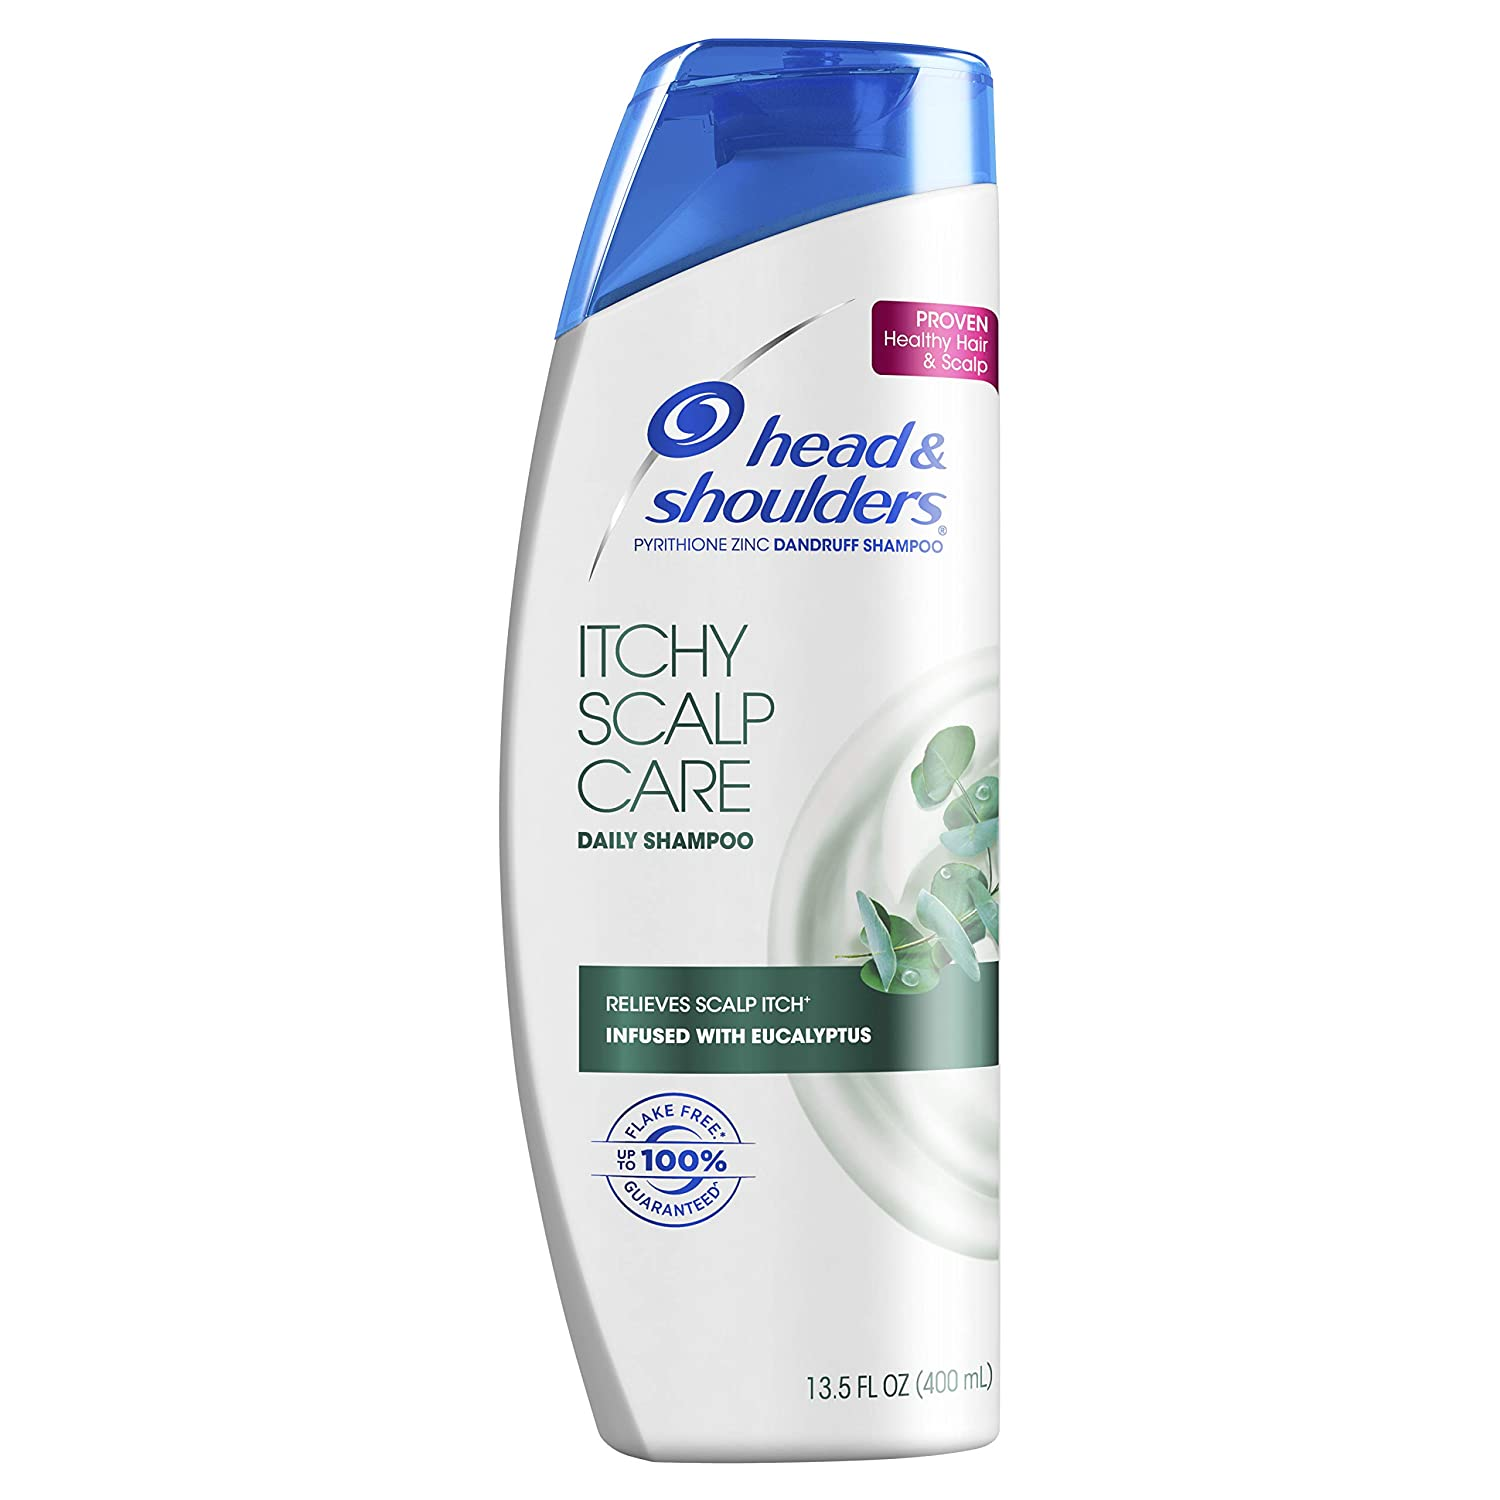 Head and Shoulders, Anti Dandruff Shampoo, Itchy Scalp Care, Daily Use Hair Treatment, 13.5 fl oz, Pack of 2